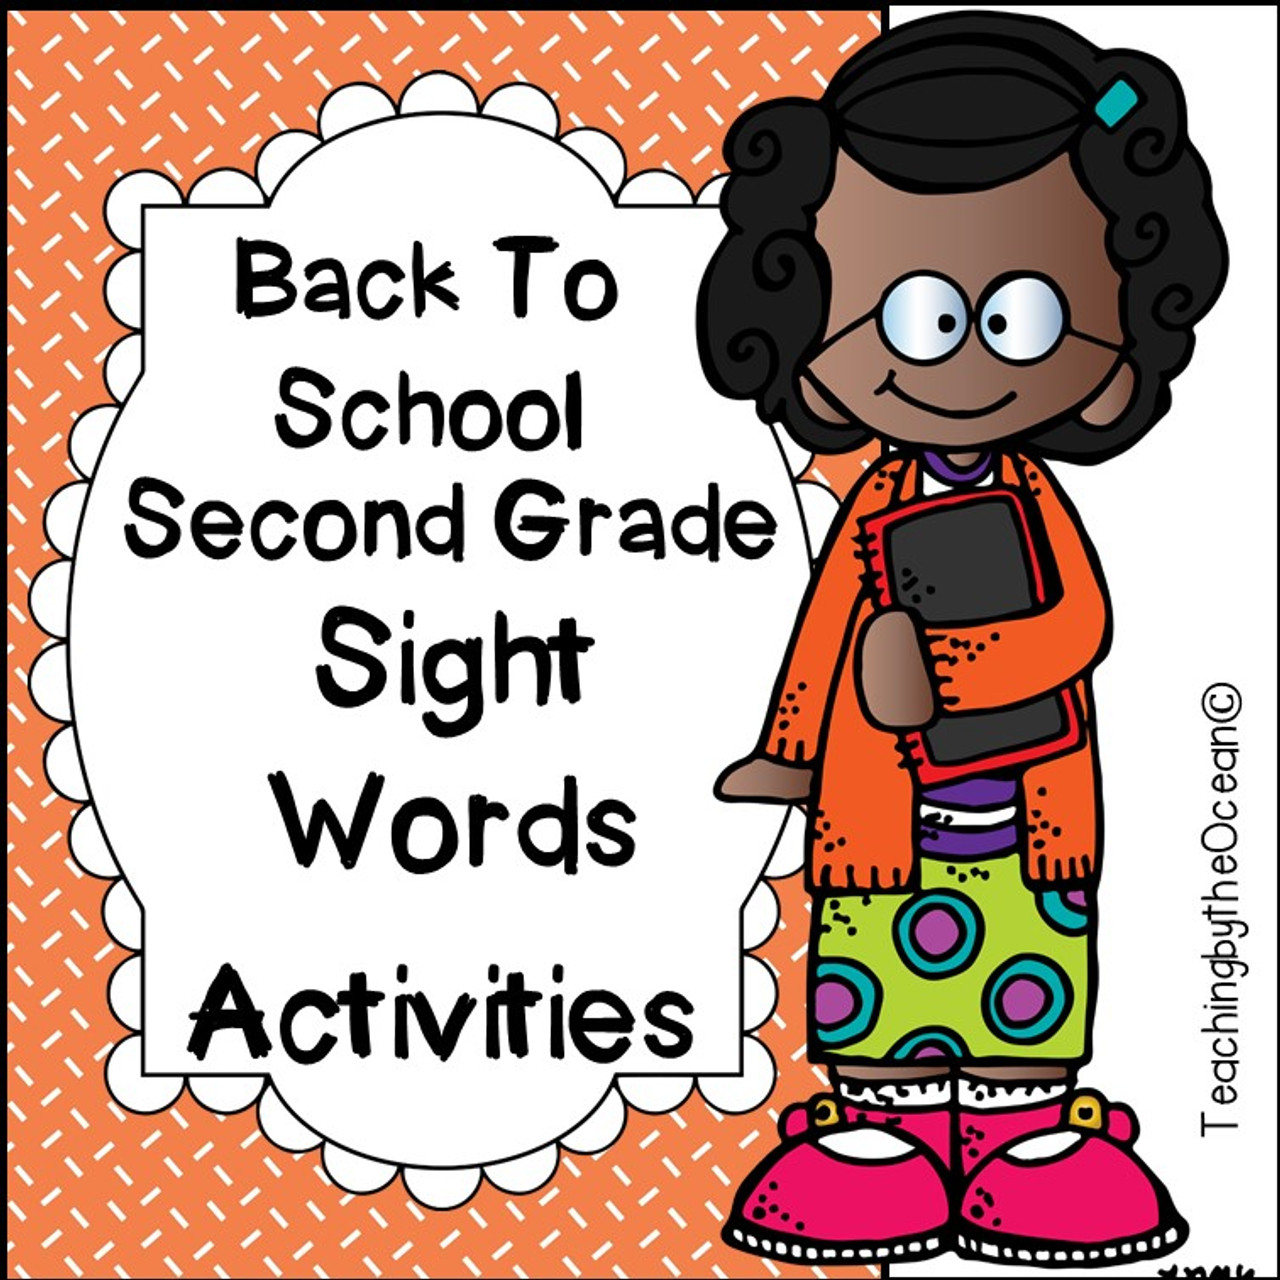 hight resolution of Second Grade Sight Words Worksheets - Back to School Themed - Amped Up  Learning